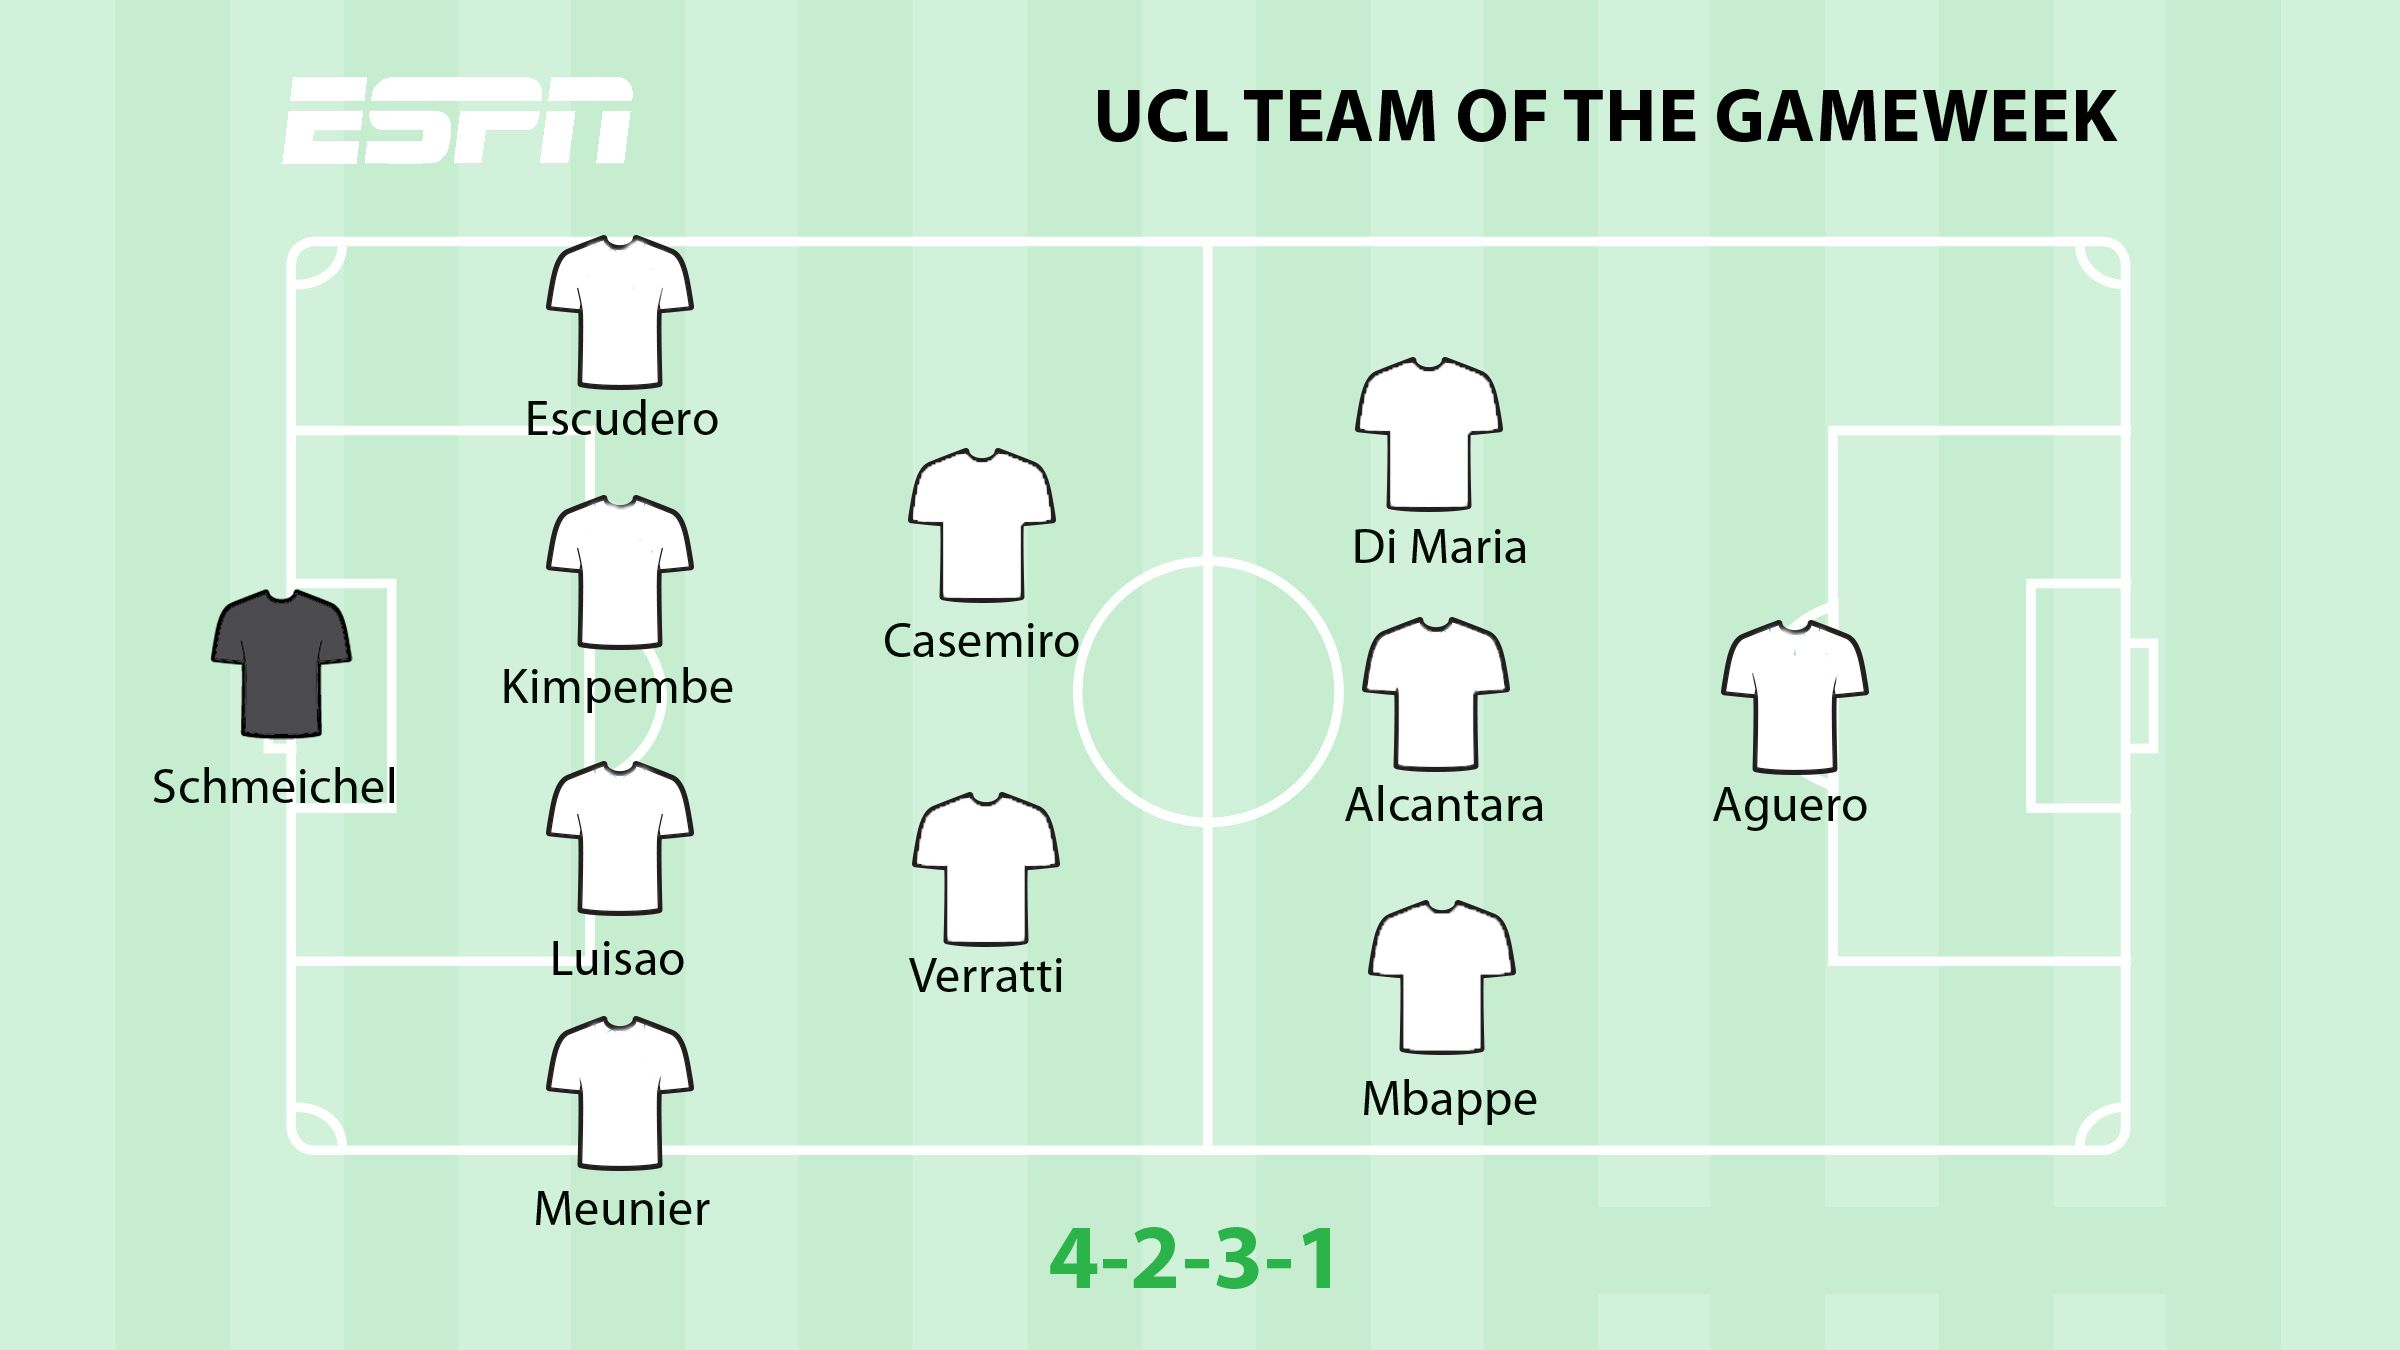 ESPN FC's Champions League Team of the Gameweek.